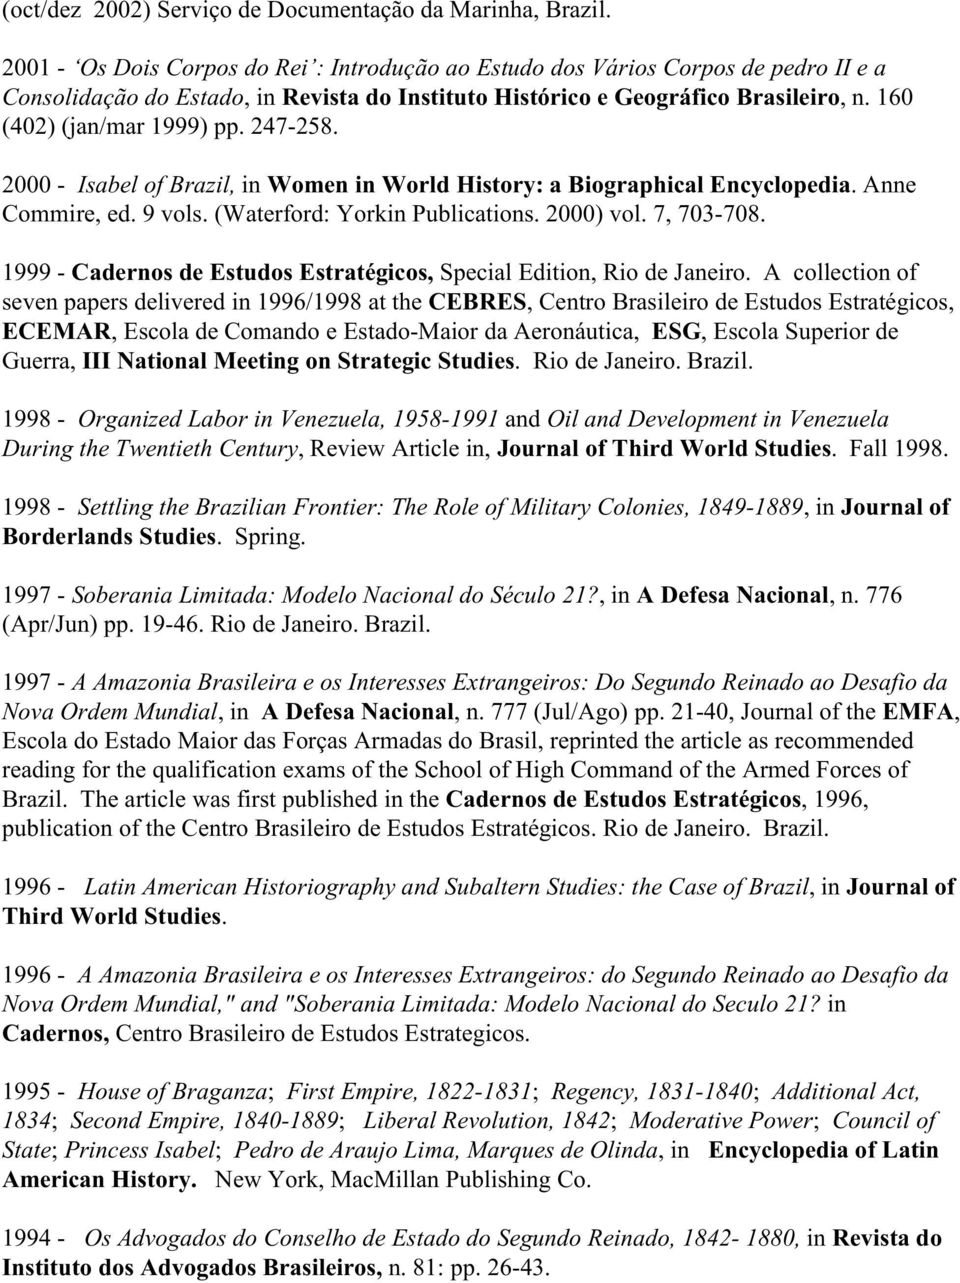 247-258. 2000 - Isabel of Brazil, in Women in World History: a Biographical Encyclopedia. Anne Commire, ed. 9 vols. (Waterford: Yorkin Publications. 2000) vol. 7, 703-708.